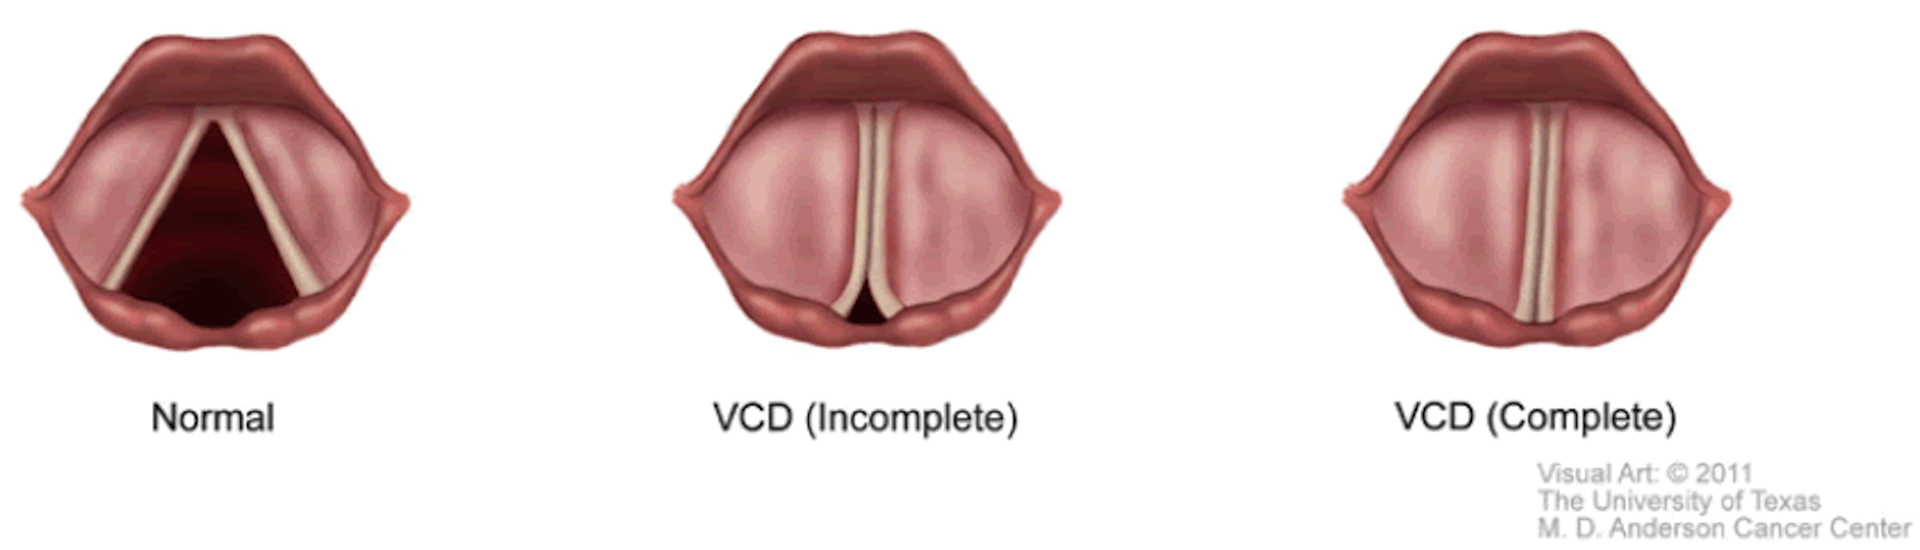 Vocal Cord Dysfunction VCD infographic showing normal, incomplete and complete VCD